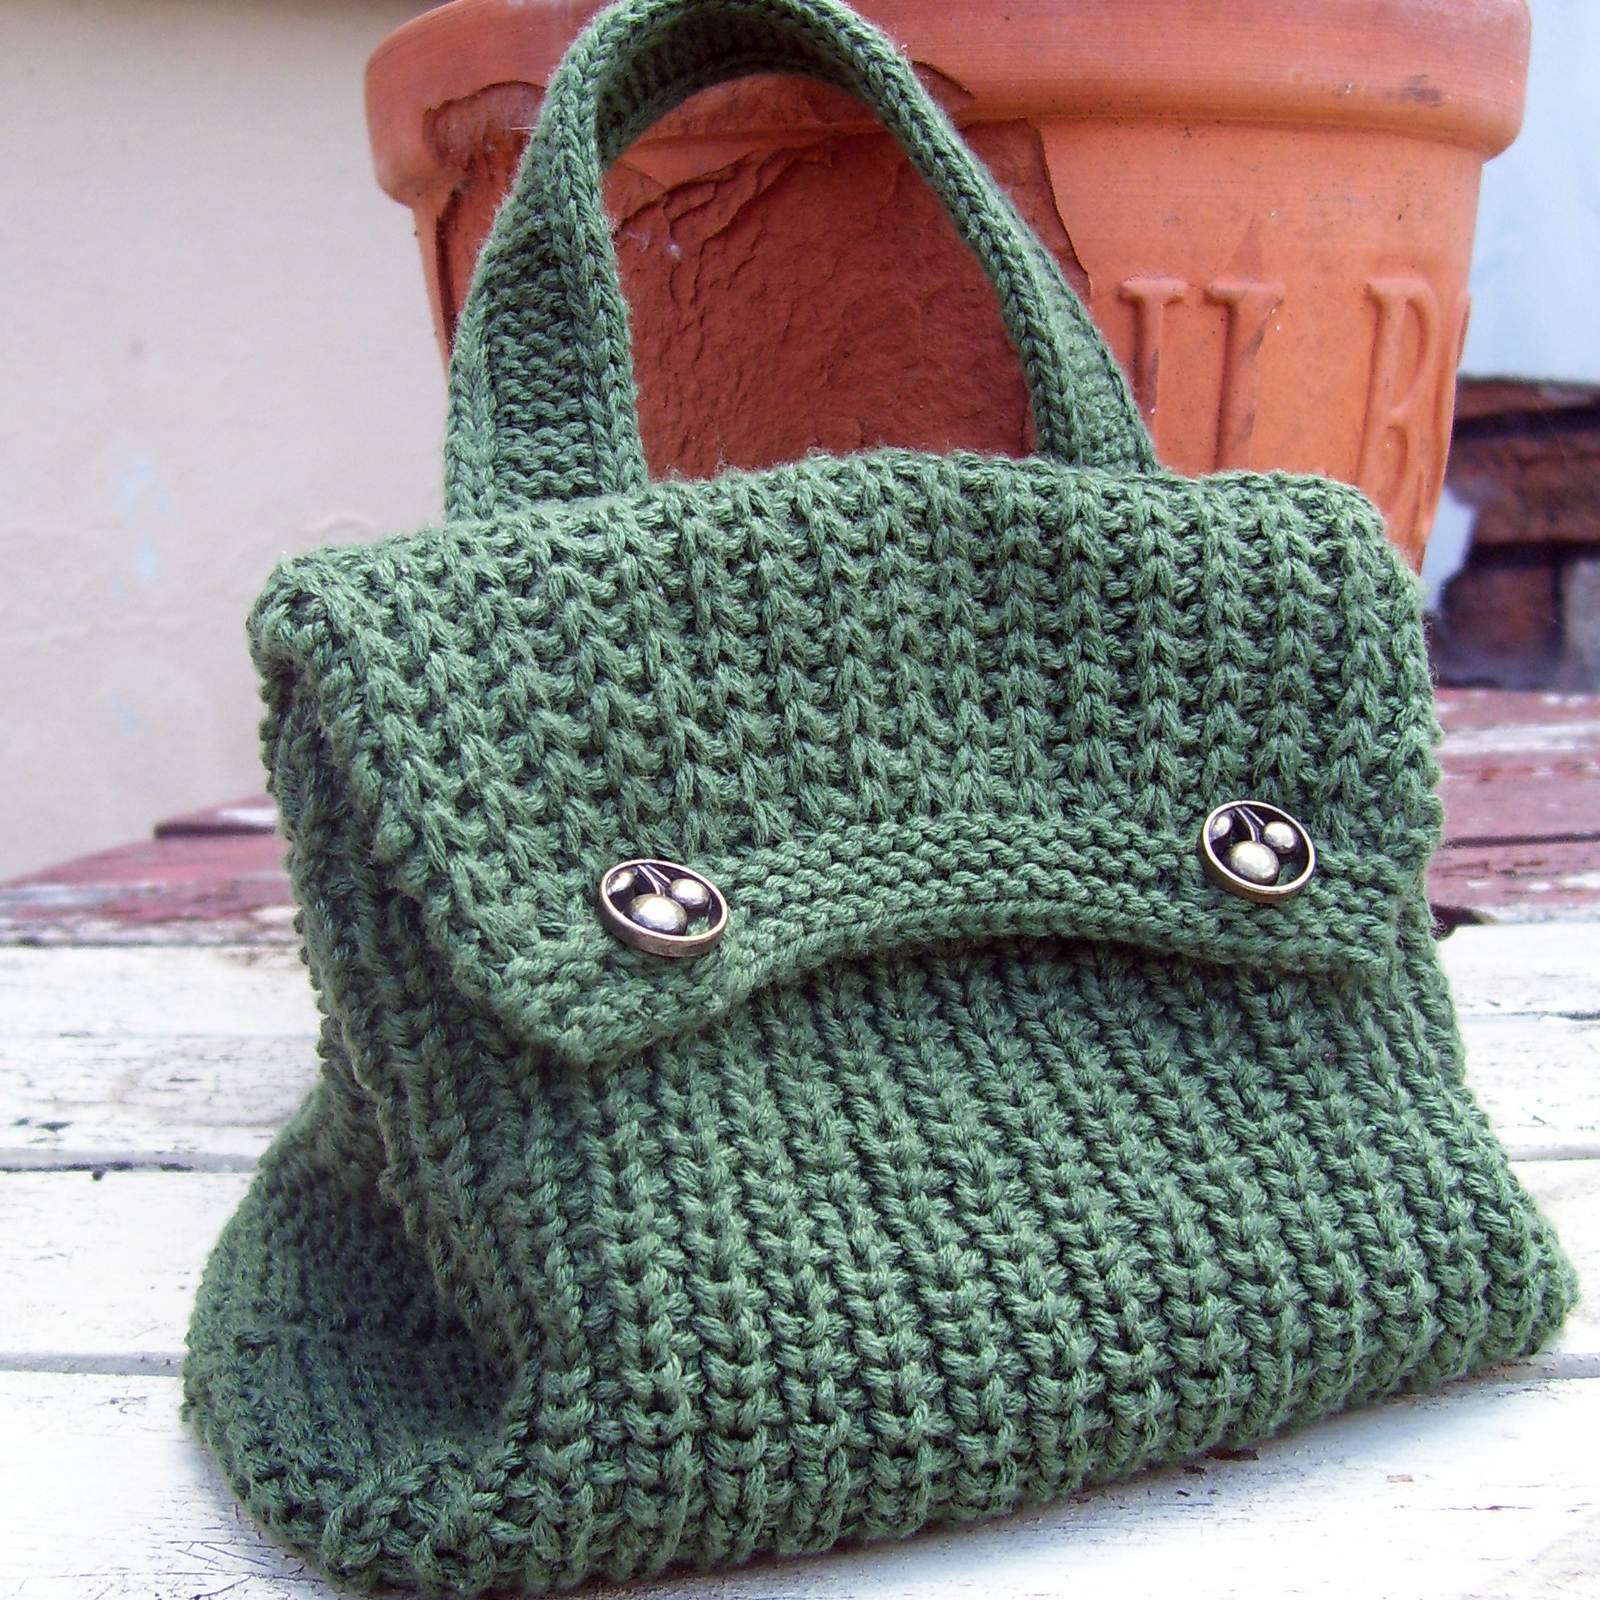 Beginners Crochet Bag Patterns : FREE CROCHET PATTERNS FOR PURSES Crochet Tutorials